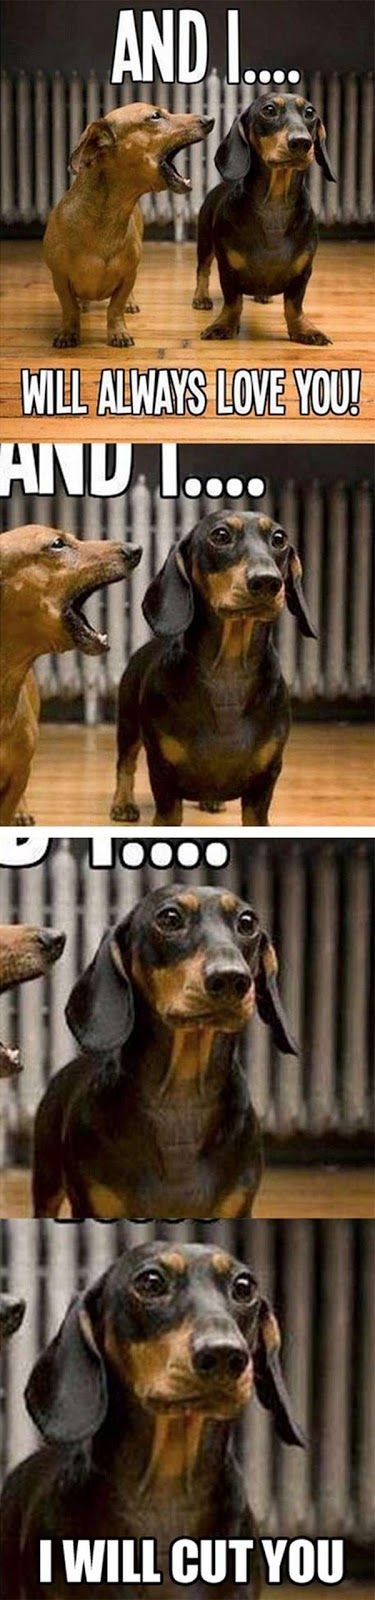 This made me LOL literally... I grabbed my mouth with laughter. So funny!